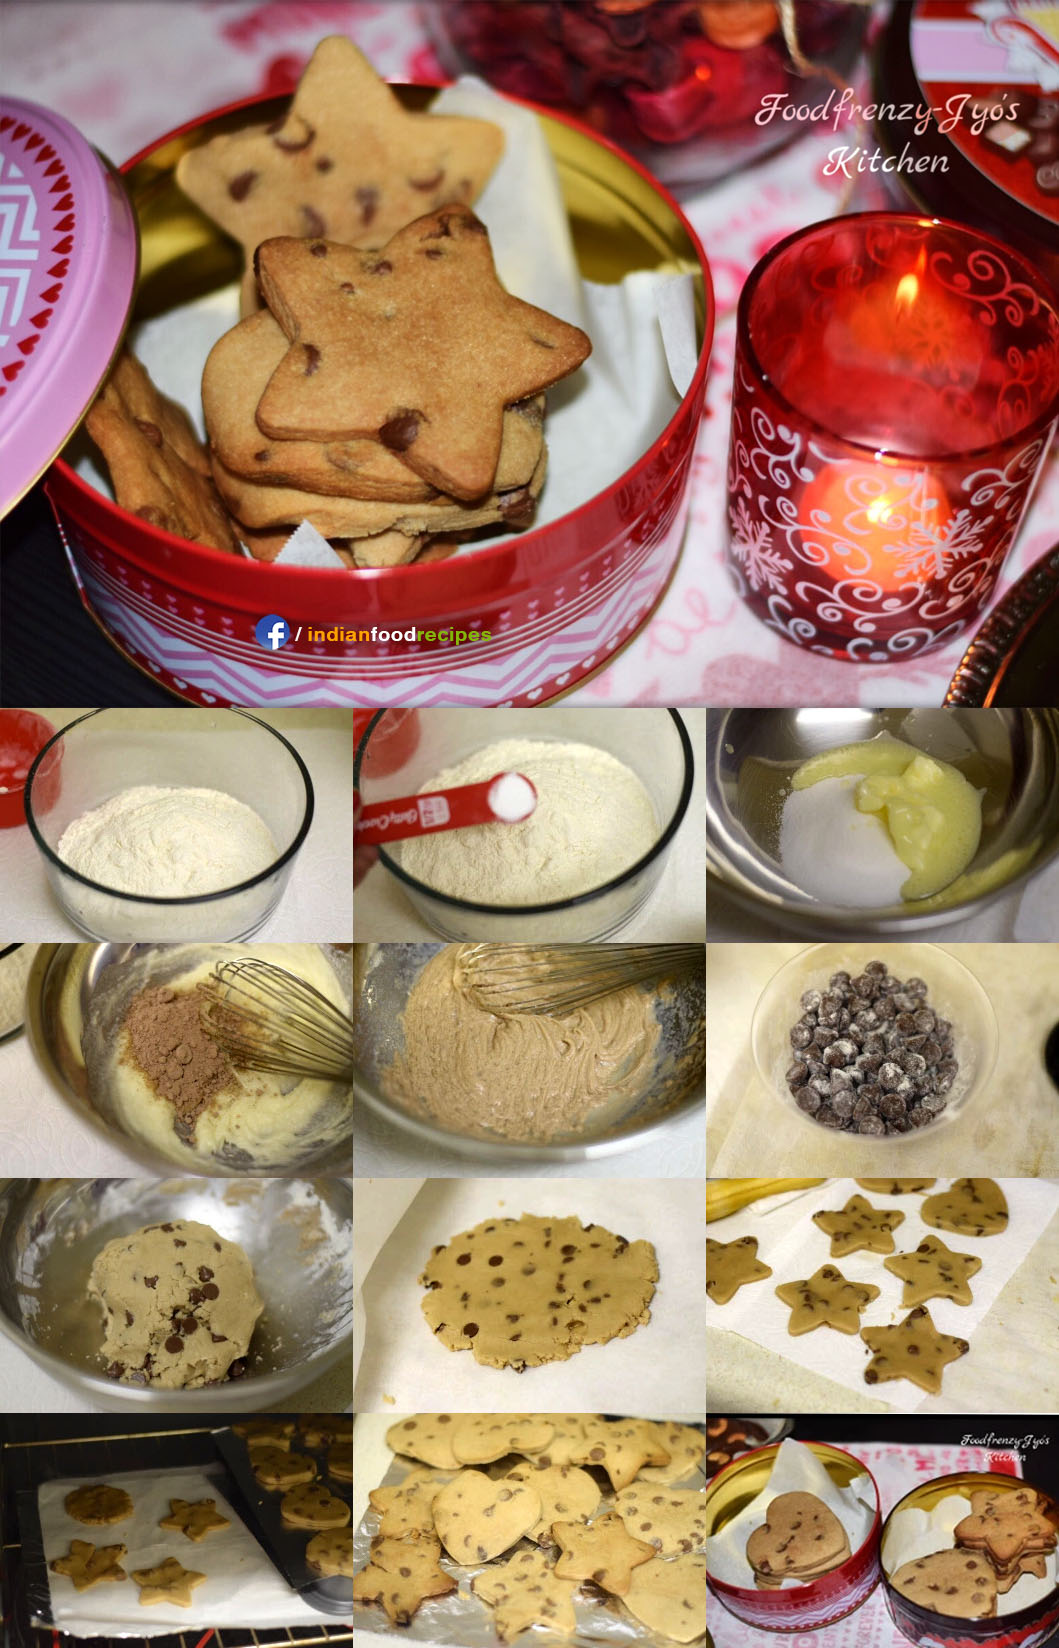 Choco Chip Cookies recipe step by step